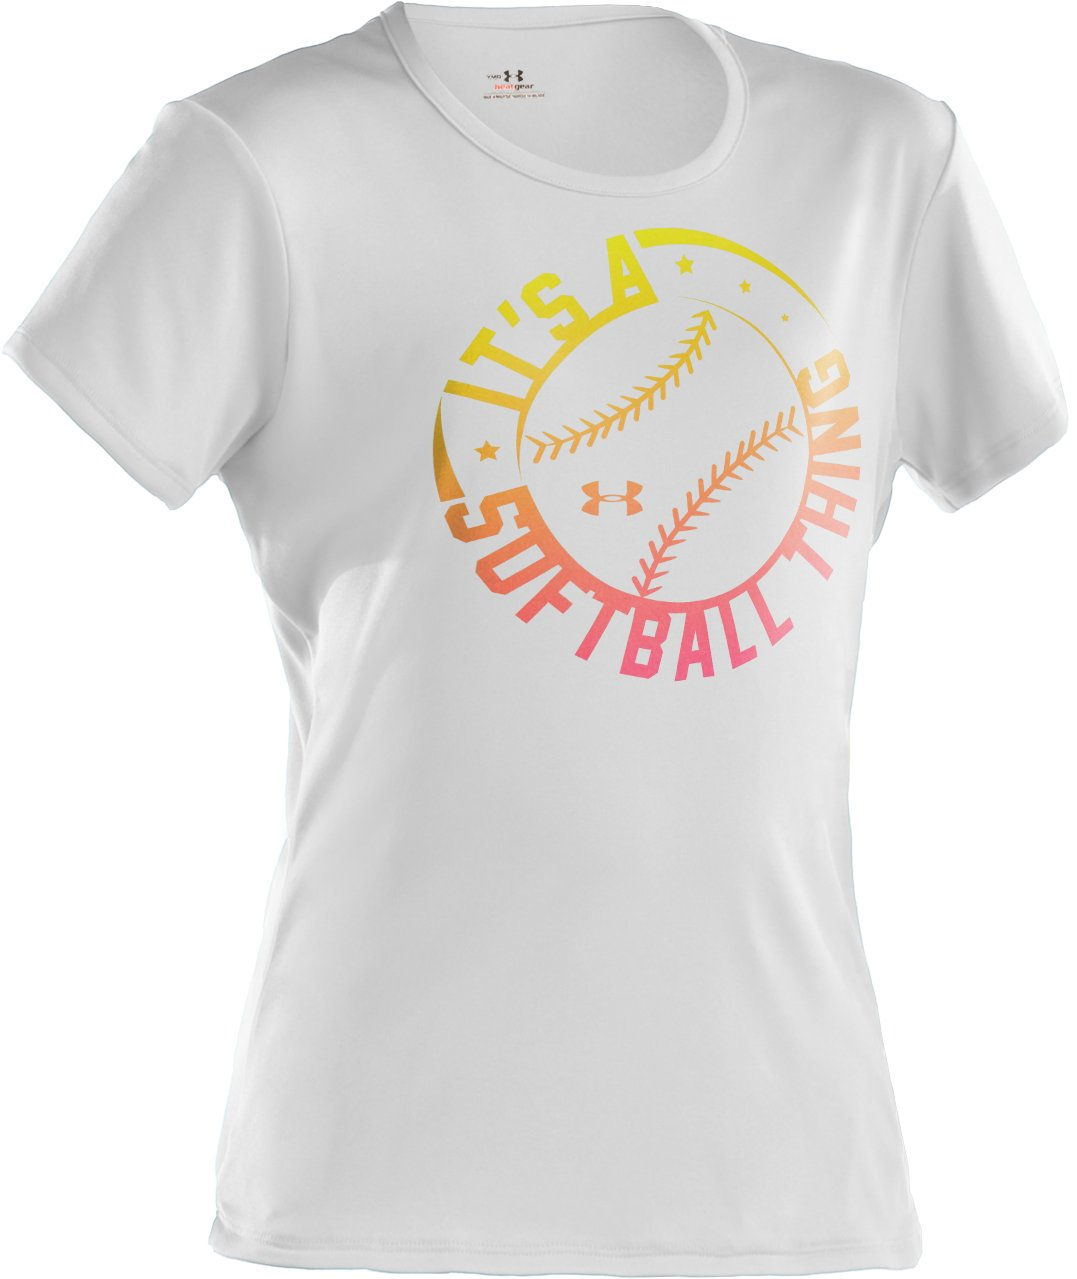 Girls' It's A Softball Thing Graphic T-Shirt, White